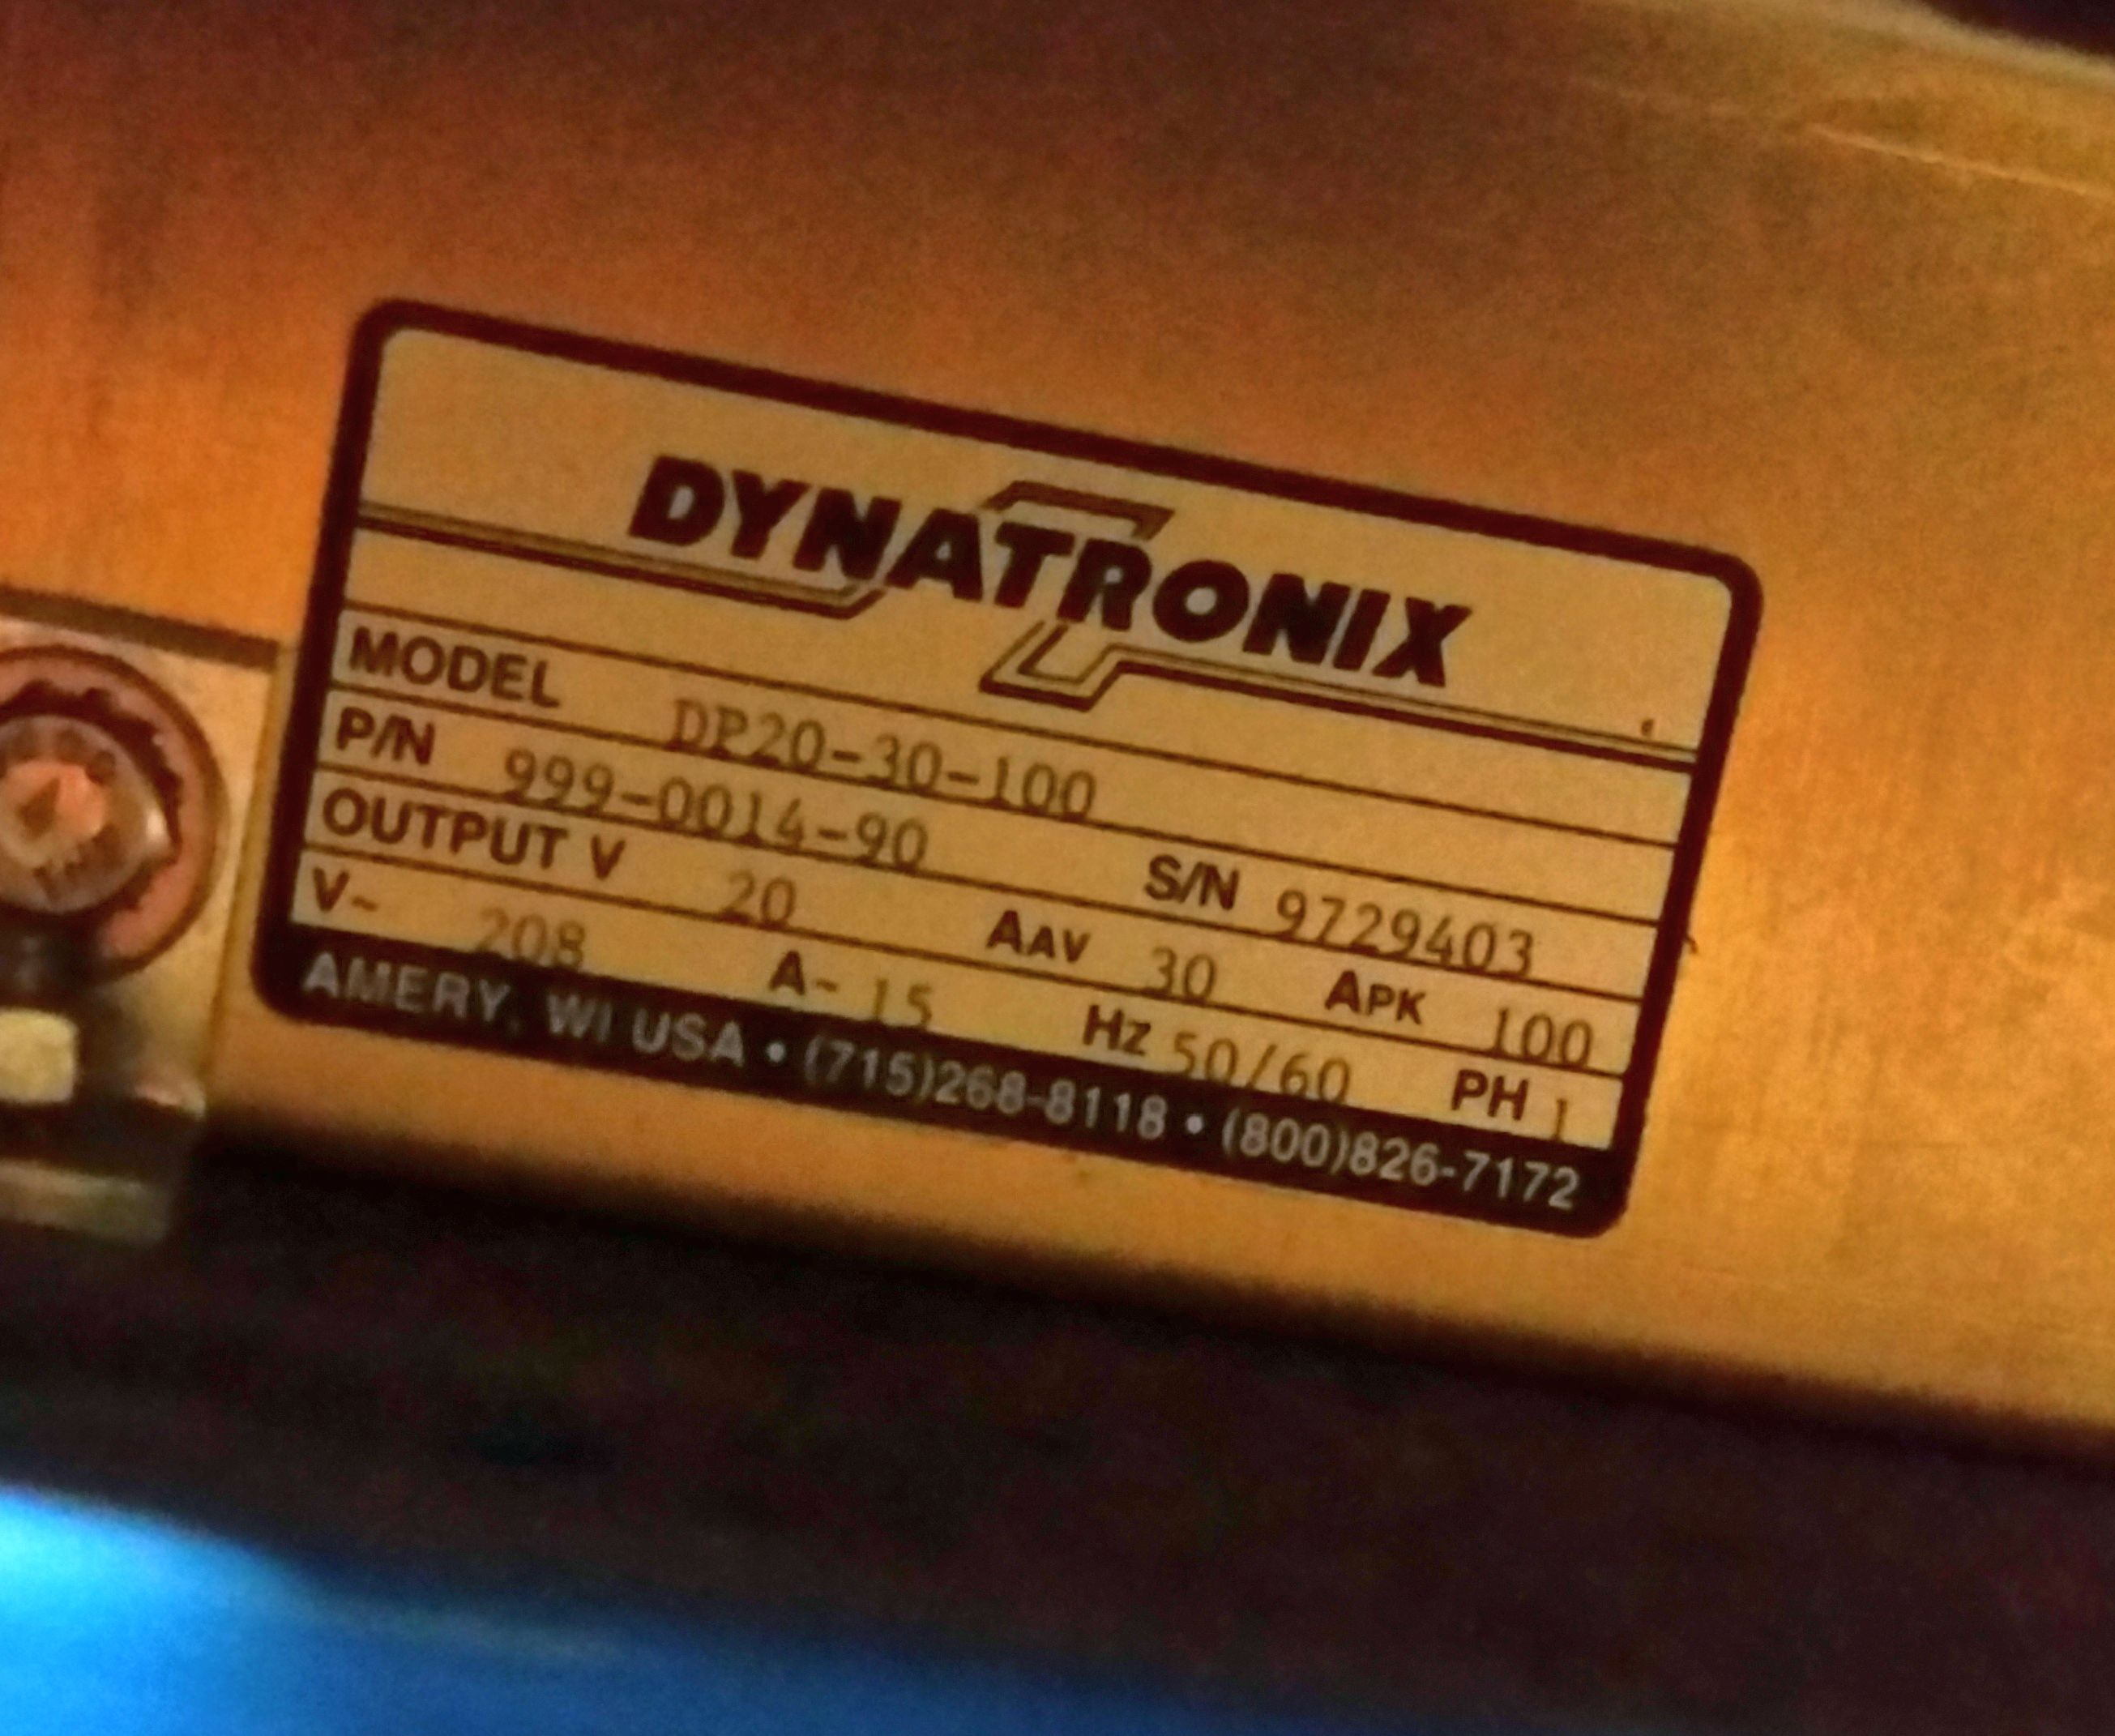 (1) Used Dynatronix DP20-30-100 Pulse Power Supply 8242